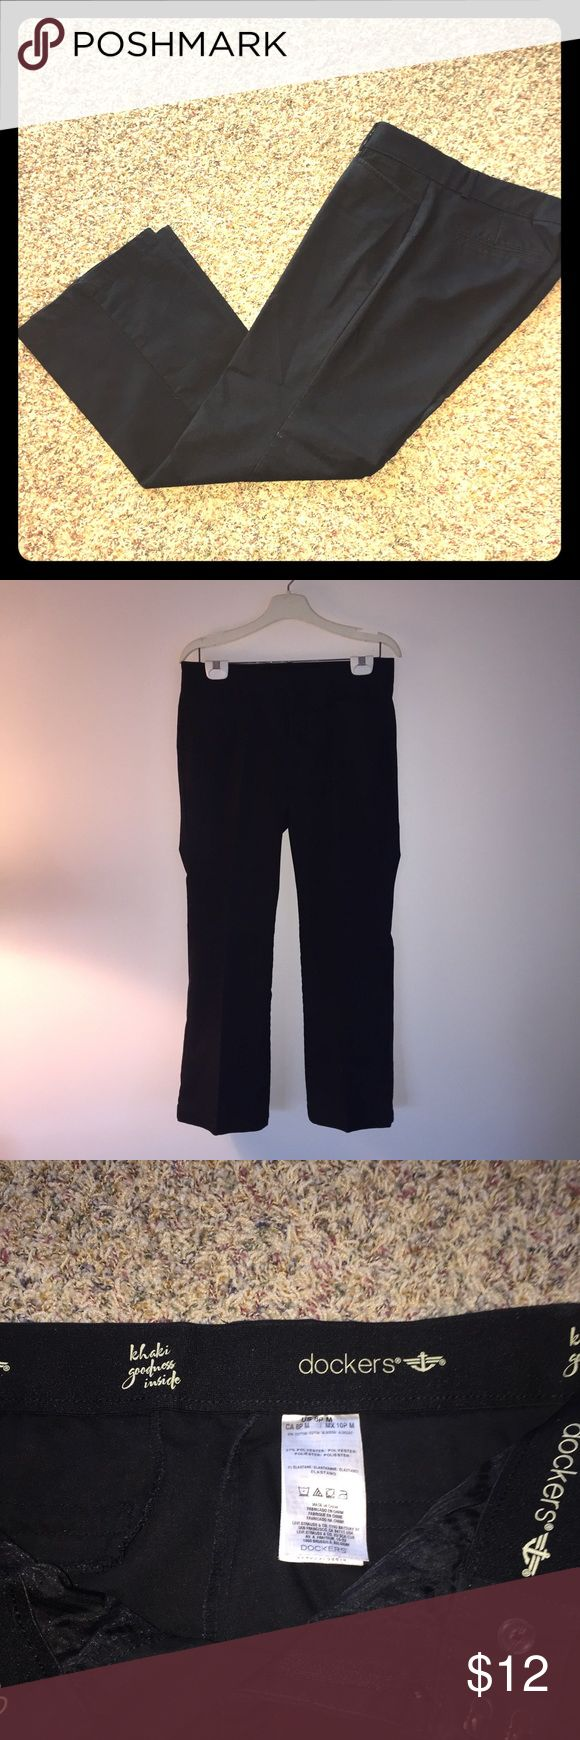 LIKE NEW- Dockers Black Khakis Black Khakis from Dockers, includes stretchy elastic waistband. 60% cotton, 37% polyester and 3 % elastane , straight leg fit. Dockers Pants Straight Leg